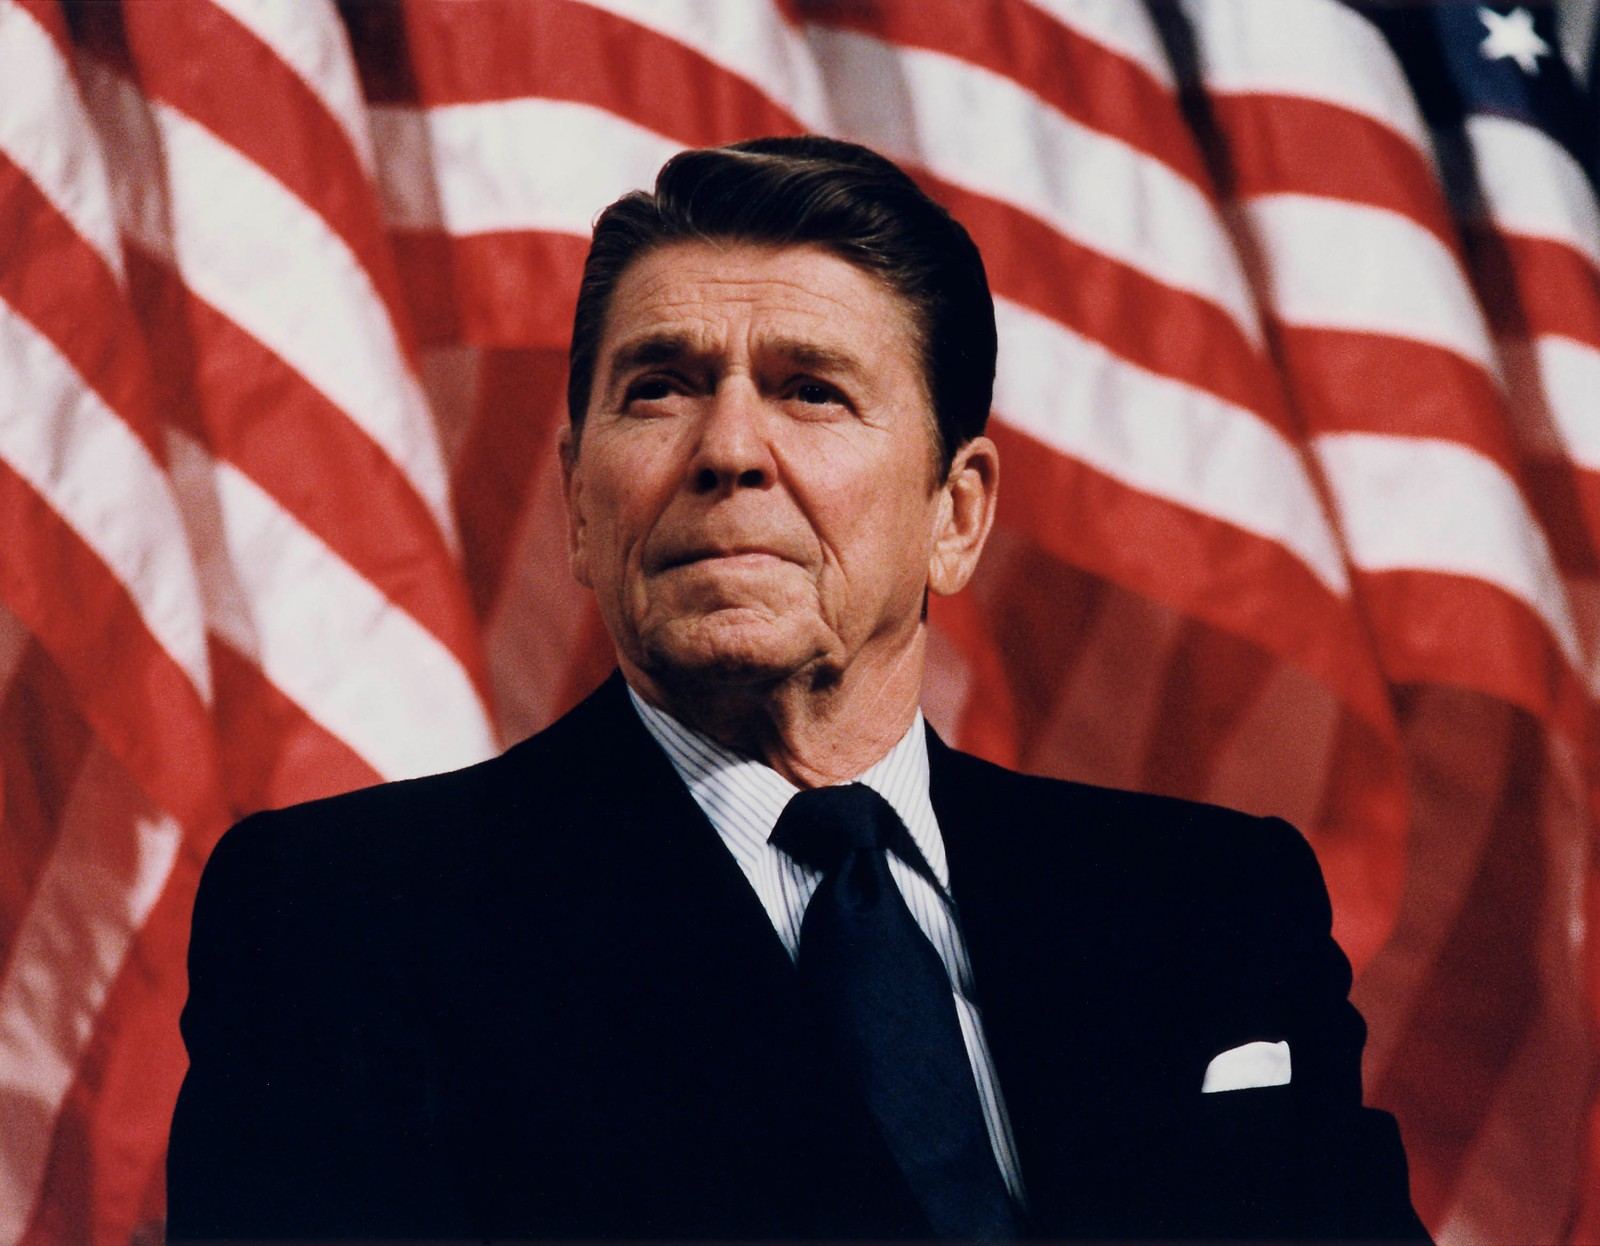 reagan-great-american-president